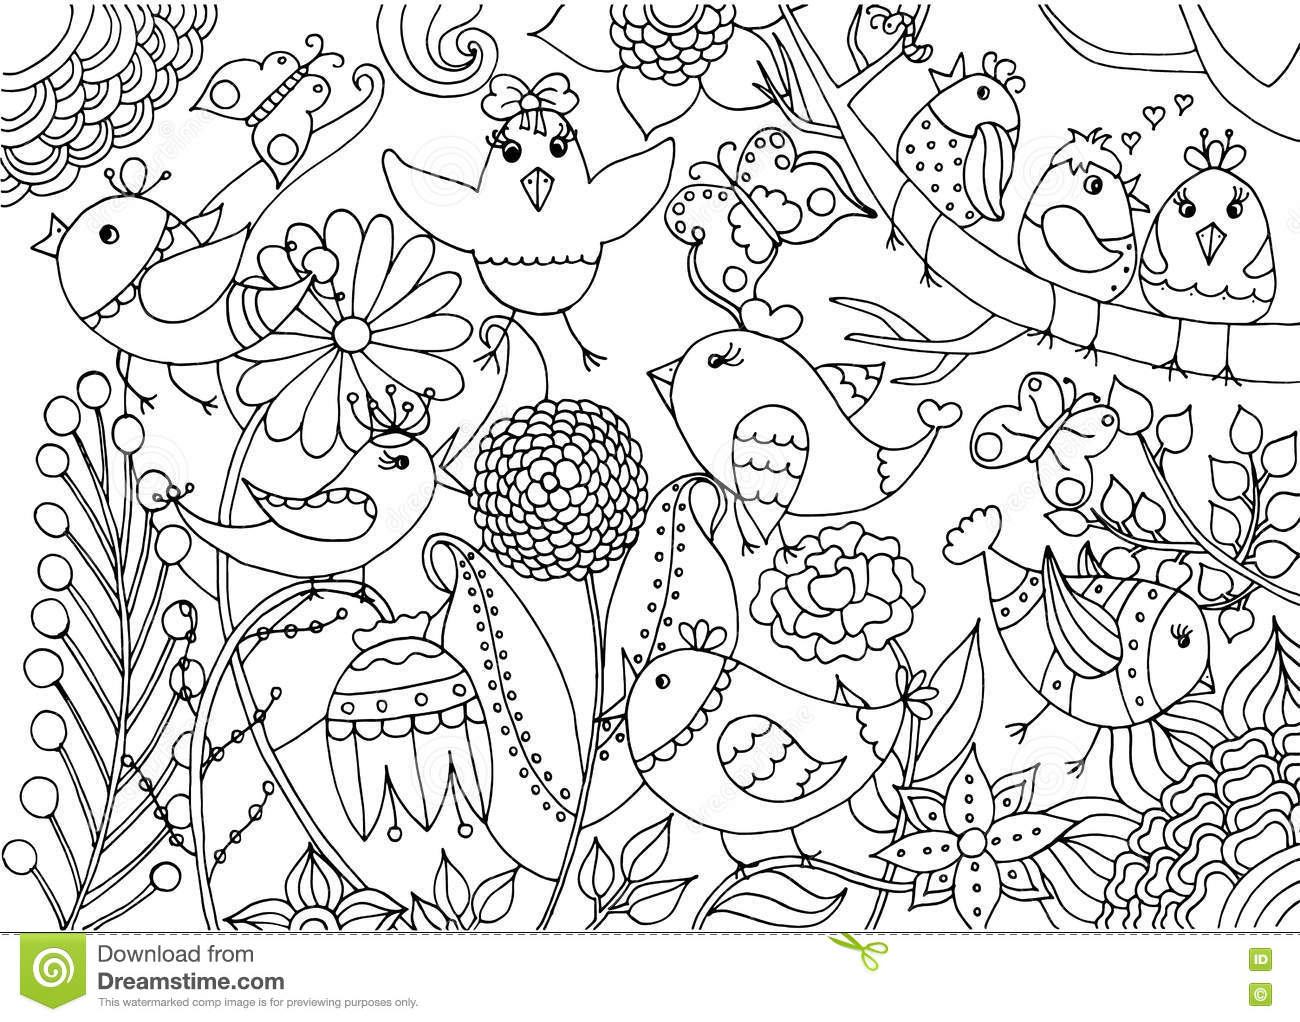 Royalty Free Vector Download Birds And Flowers Coloring Page